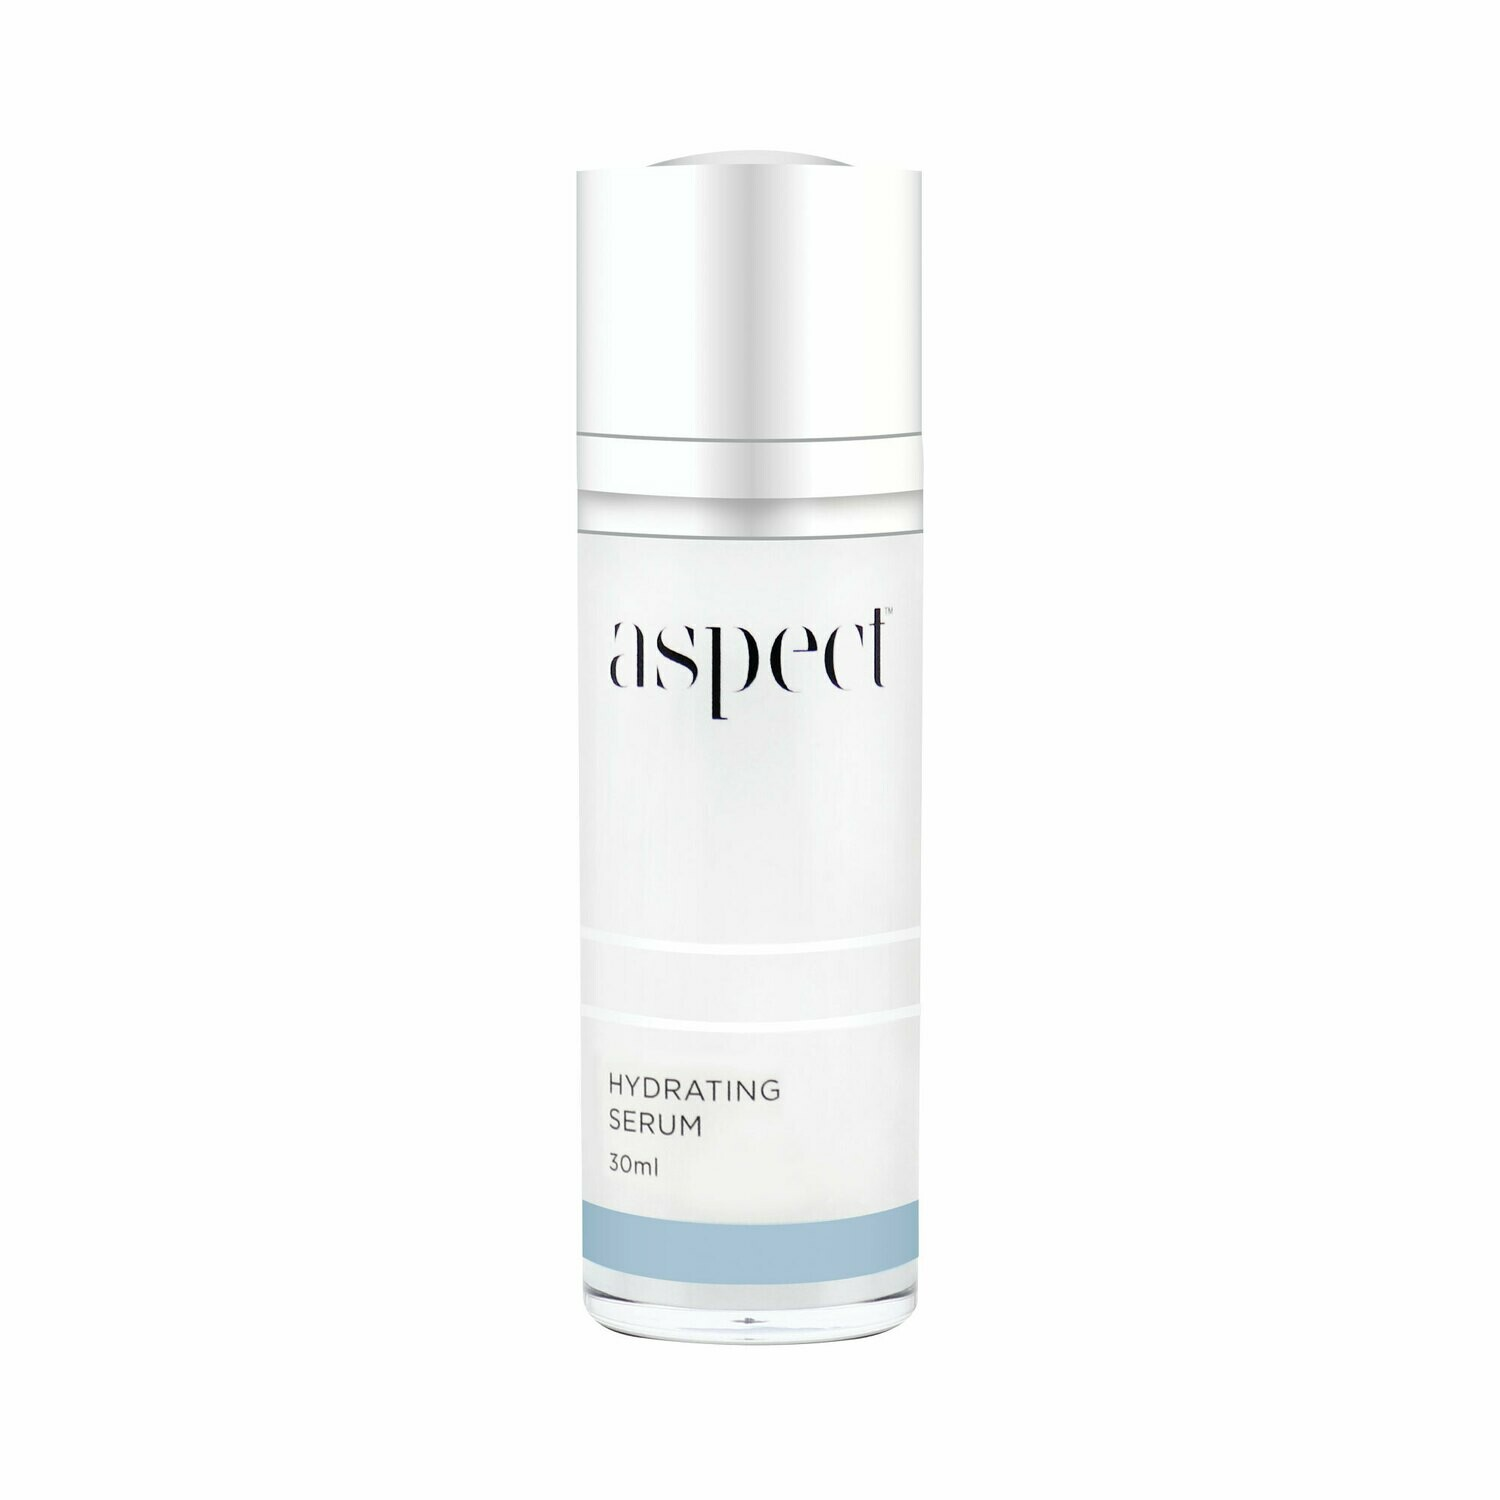 ASPECT Hydrating Serum - 30ml